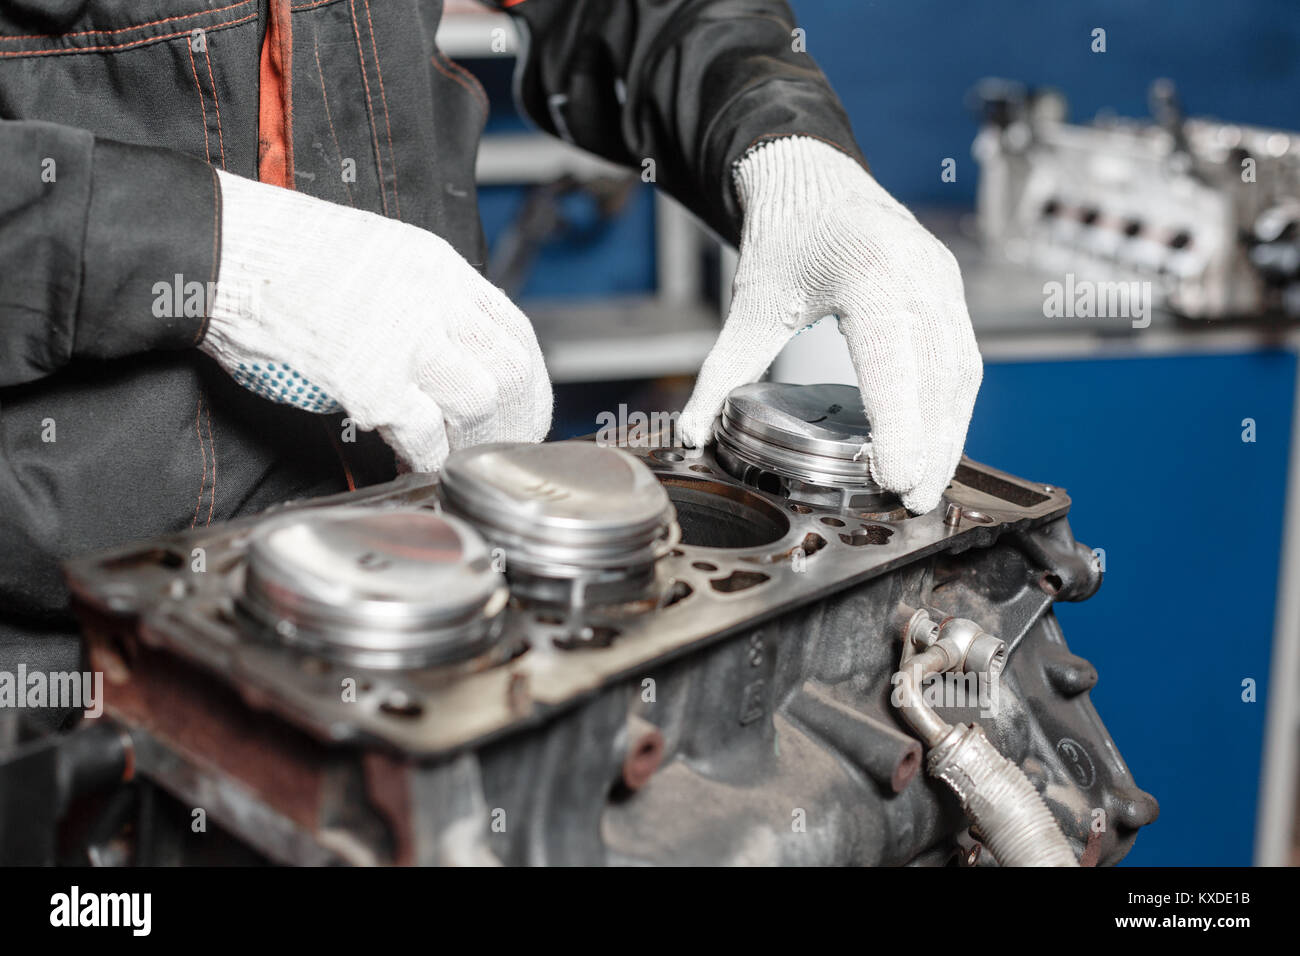 Piston Engine Metal Stockfotos & Piston Engine Metal Bilder - Alamy